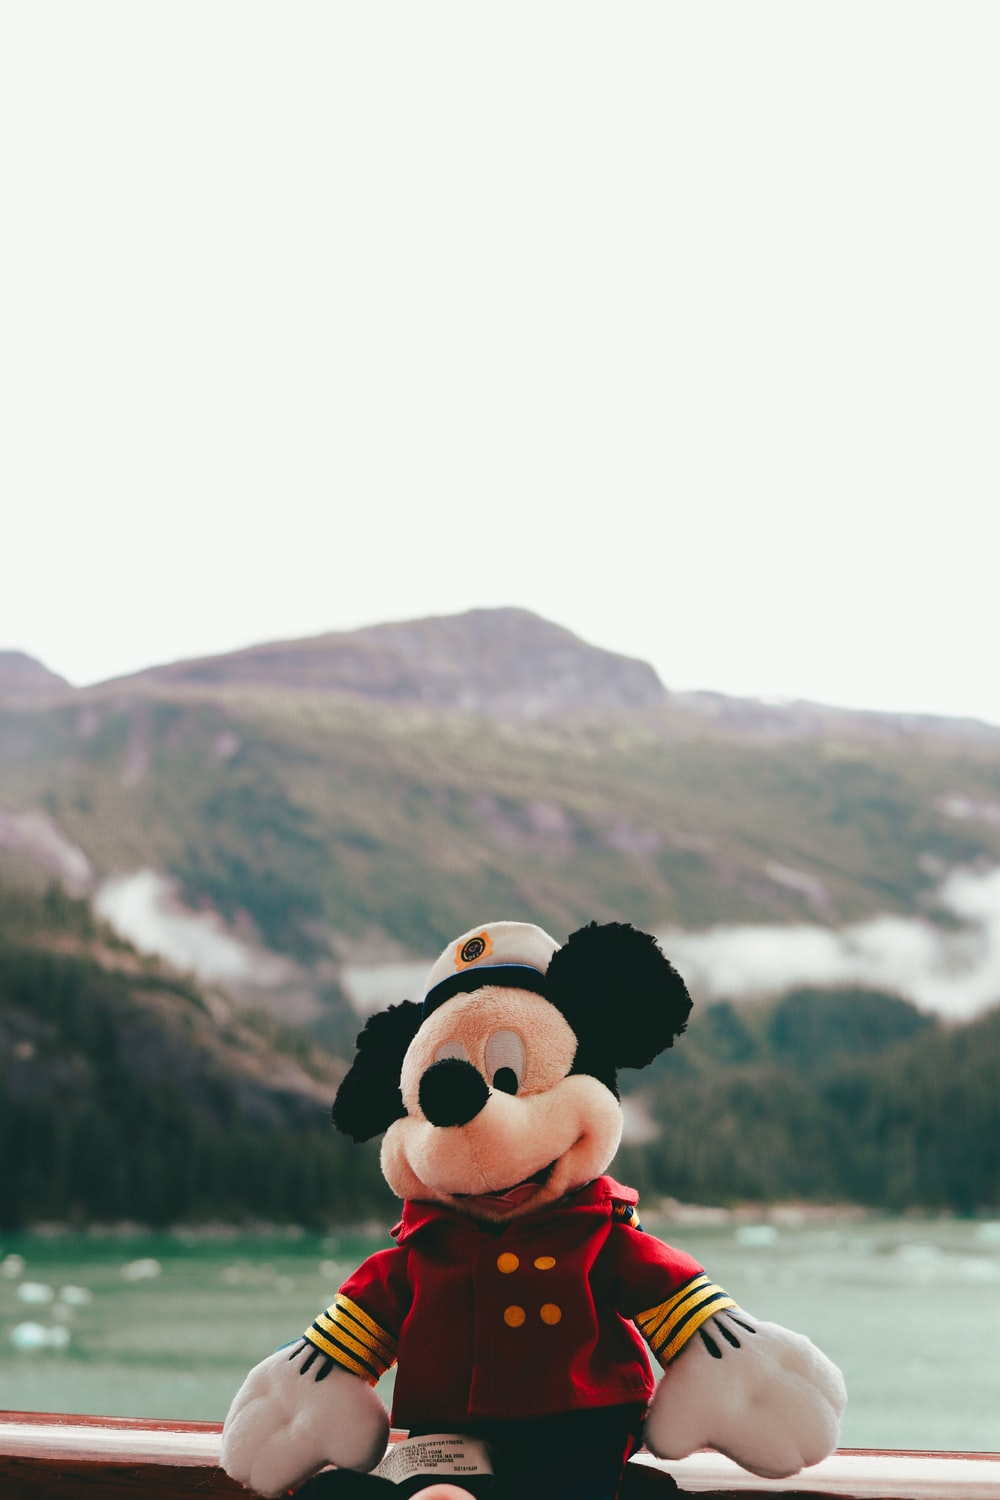 Mickey-Mouse plush toy